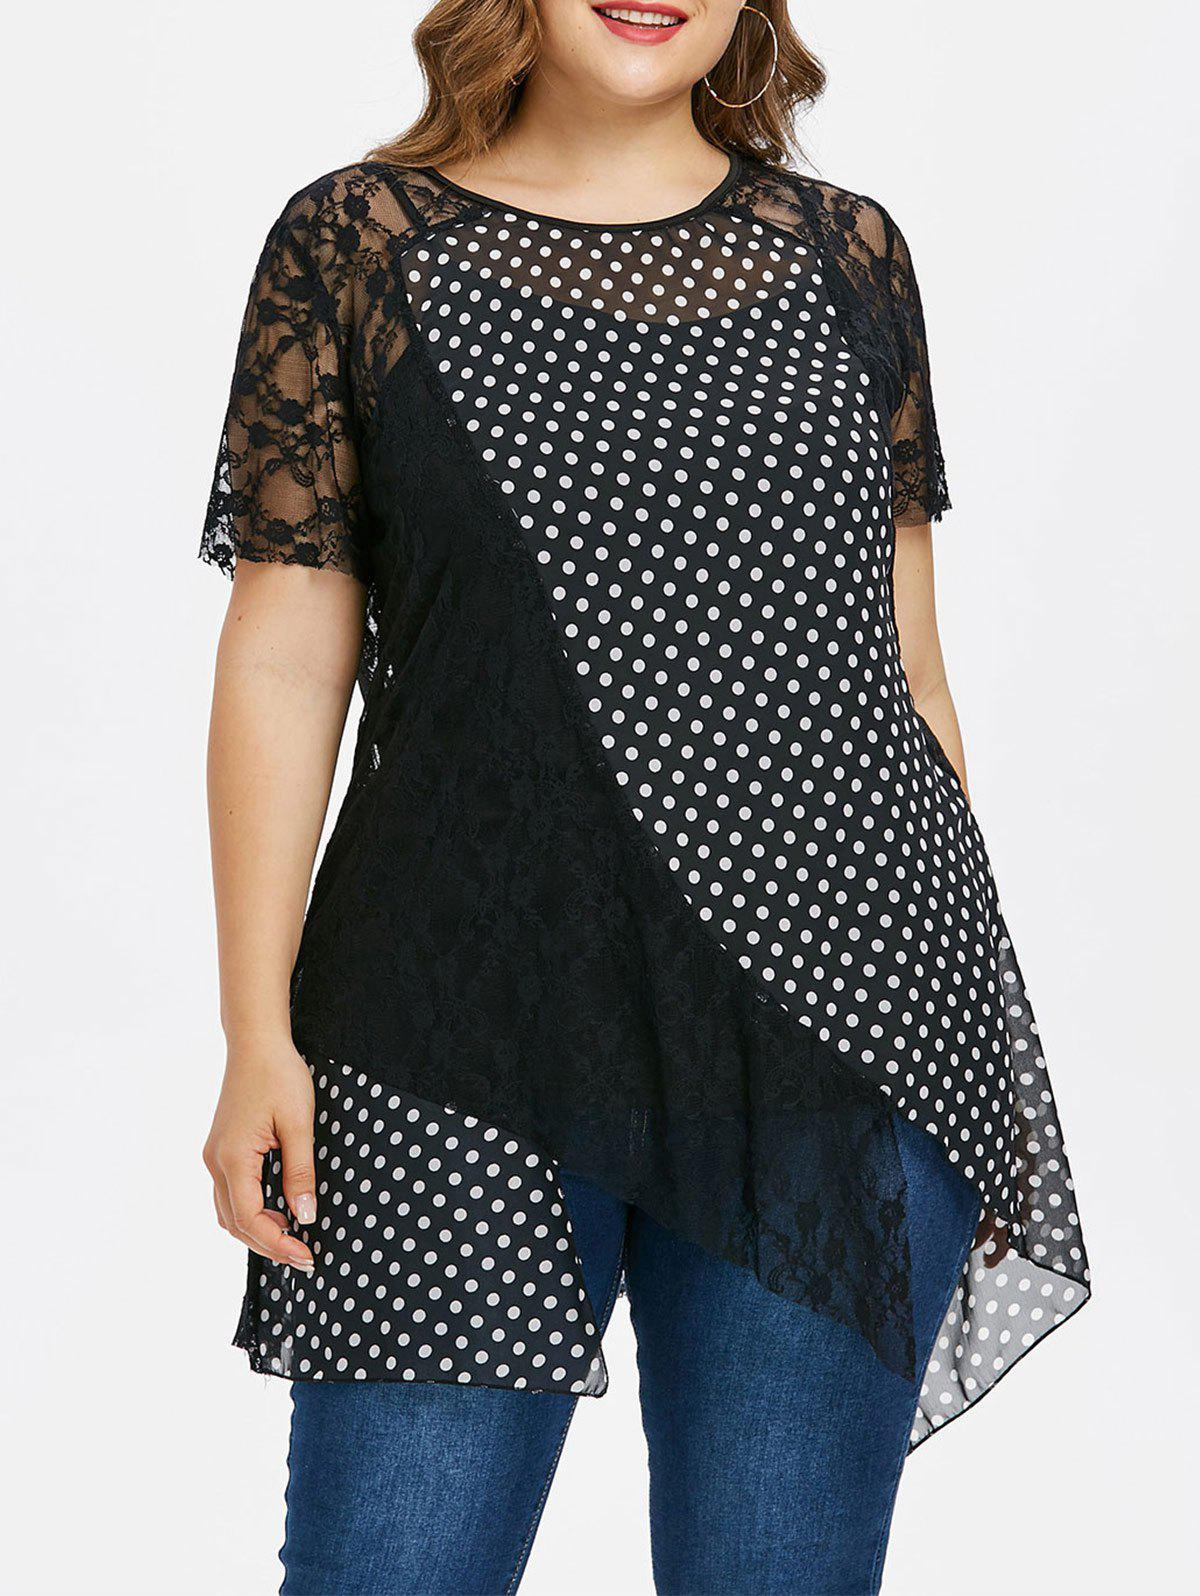 Plus Size Lace Polka Dot Top And Cami